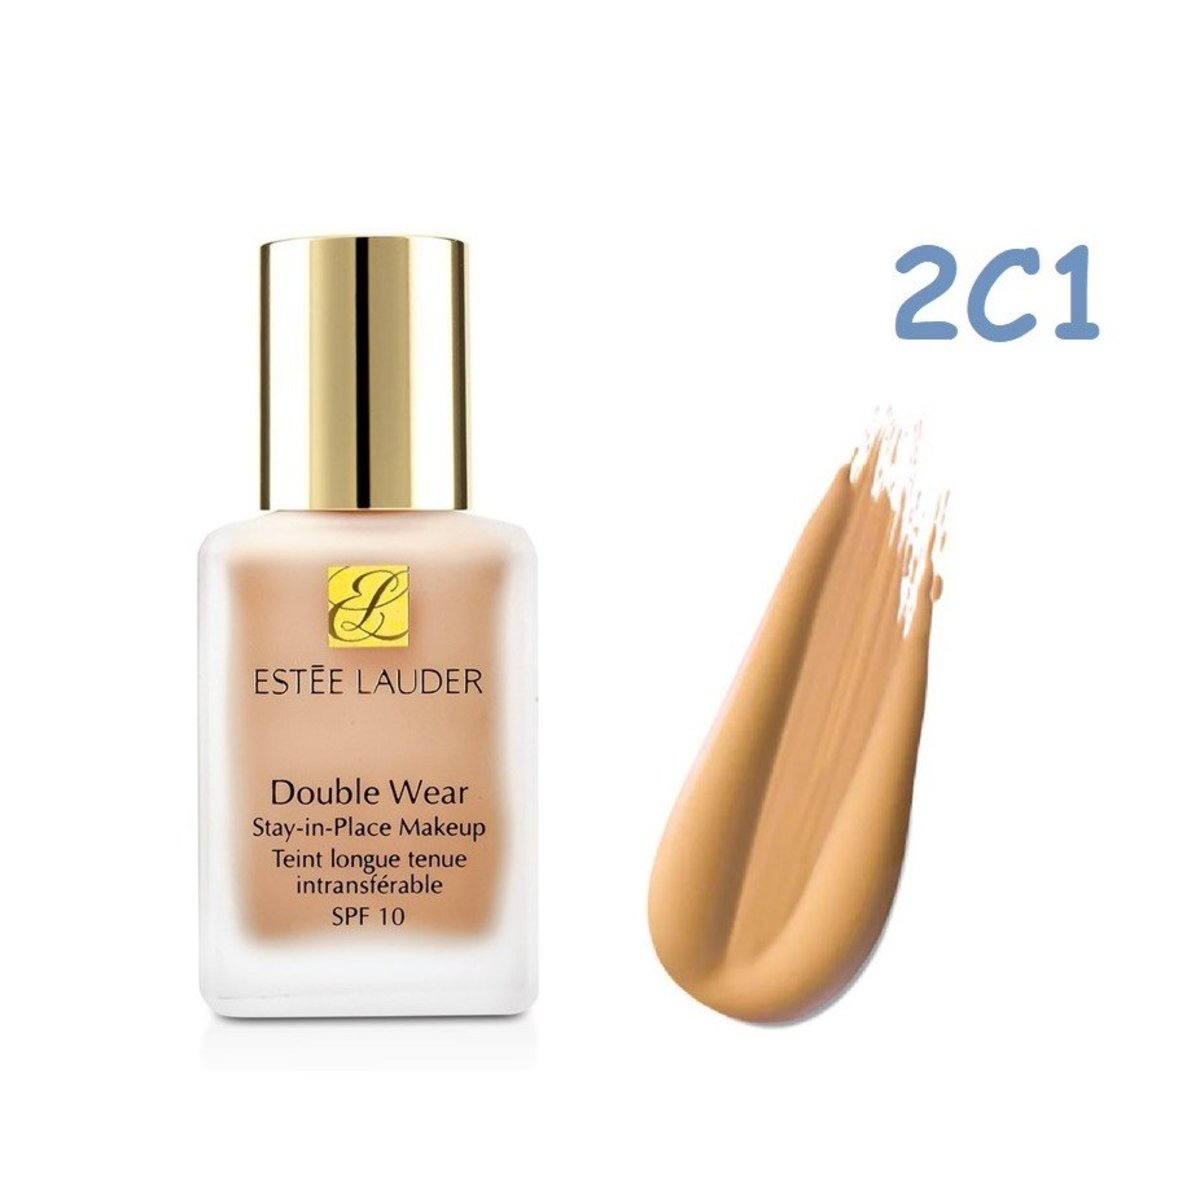 Estee Lauder Double Wear Stay-In-Place Makeup SPF 10 Foundation30ml Pure Beige #2C1 30ml(Parallel Import) (027131934998 )